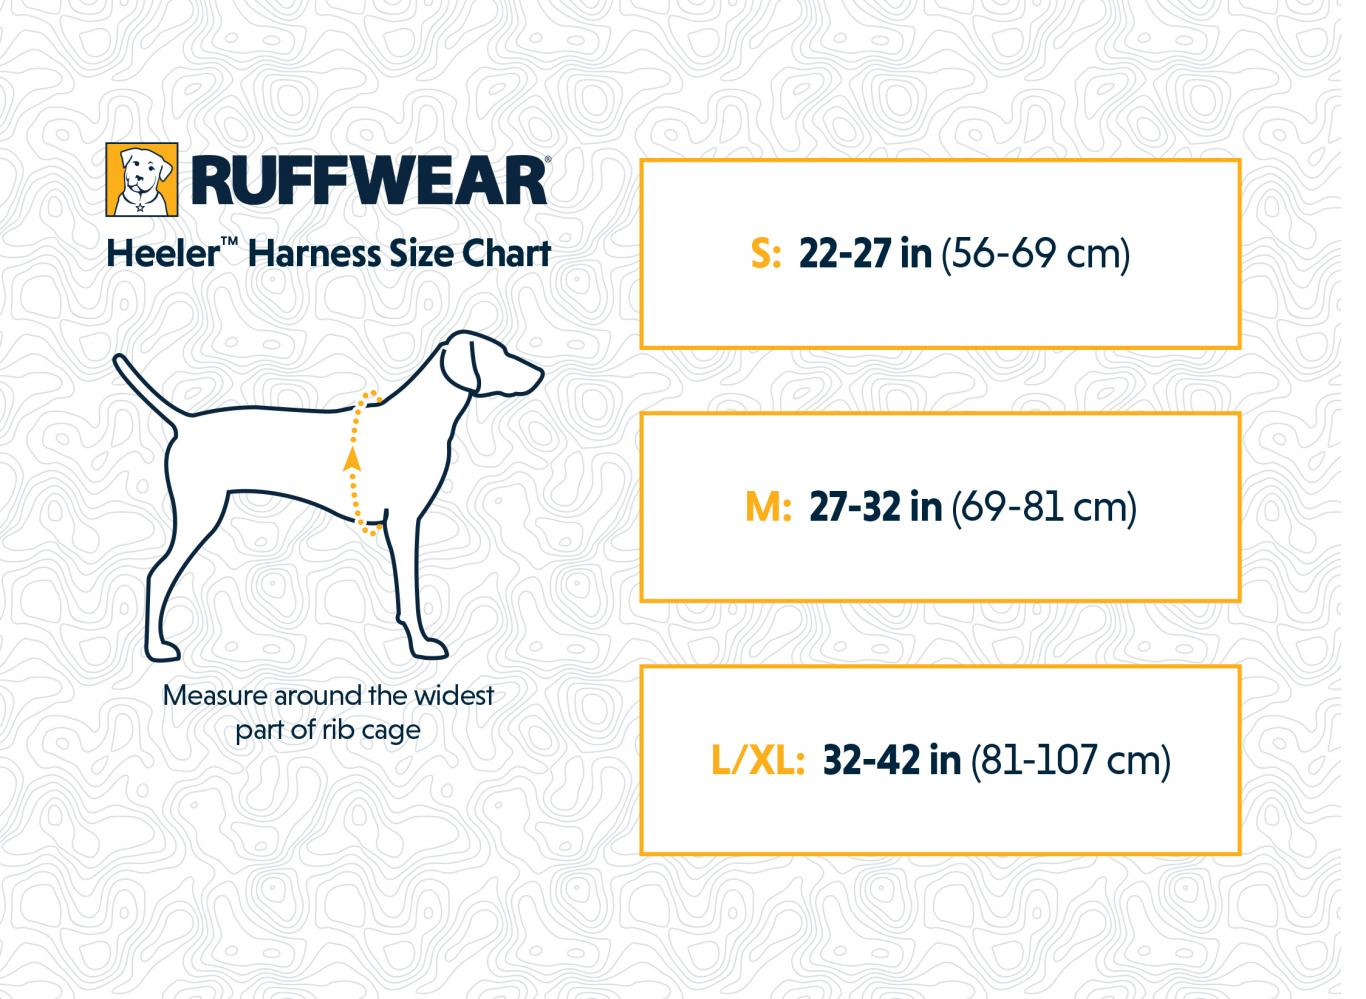 Ruffwear-Harnesses-Sizing-Chart-Horizontal-1